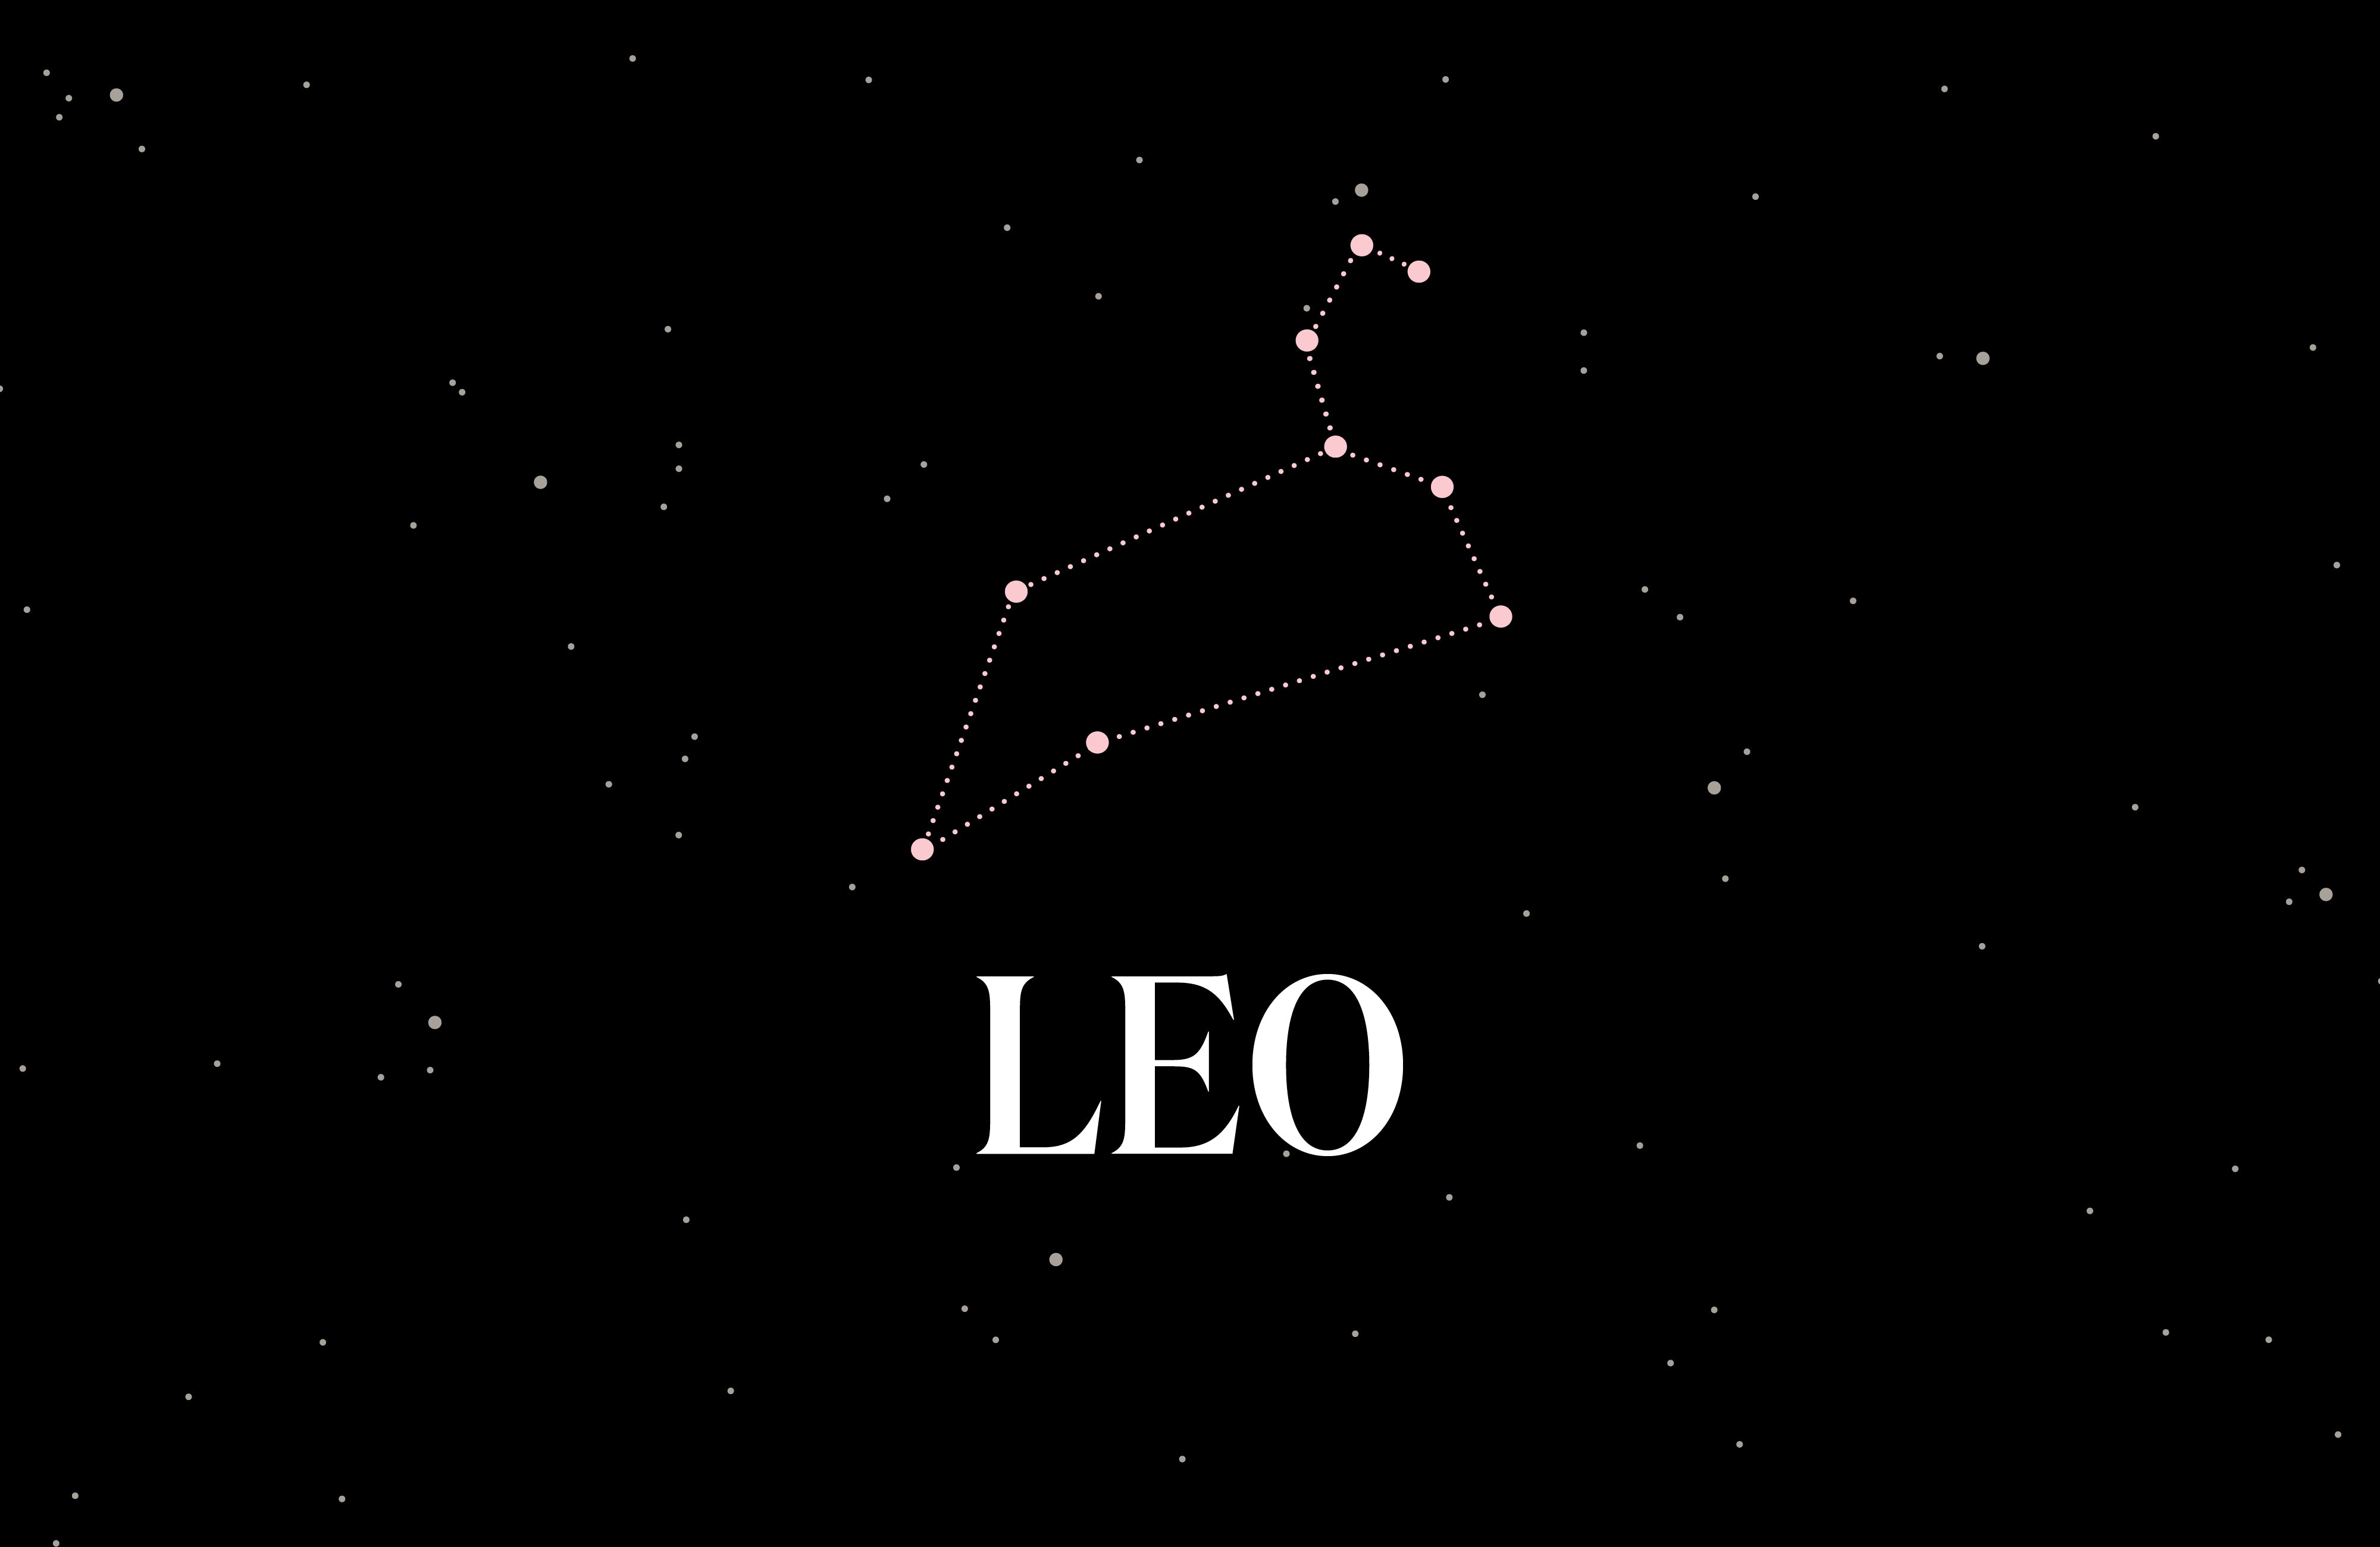 Graphic of the Leo constellation.